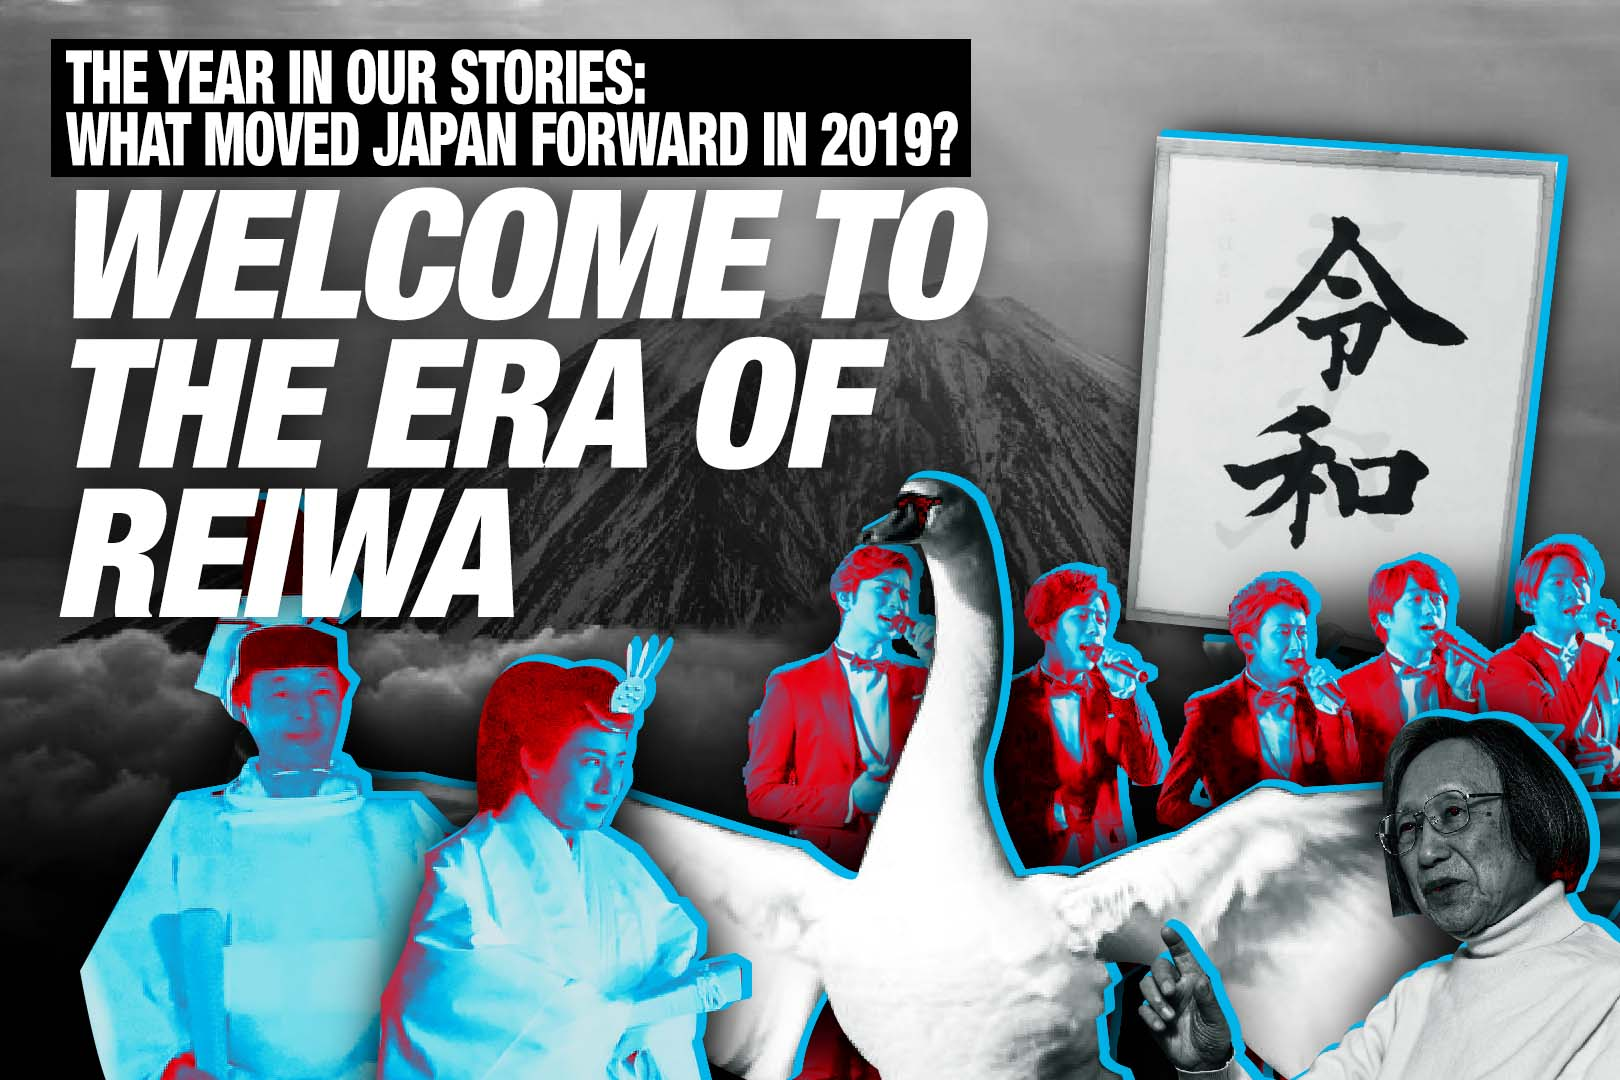 2019-the-year-in-our-stories-economy-and-technology-reiwa